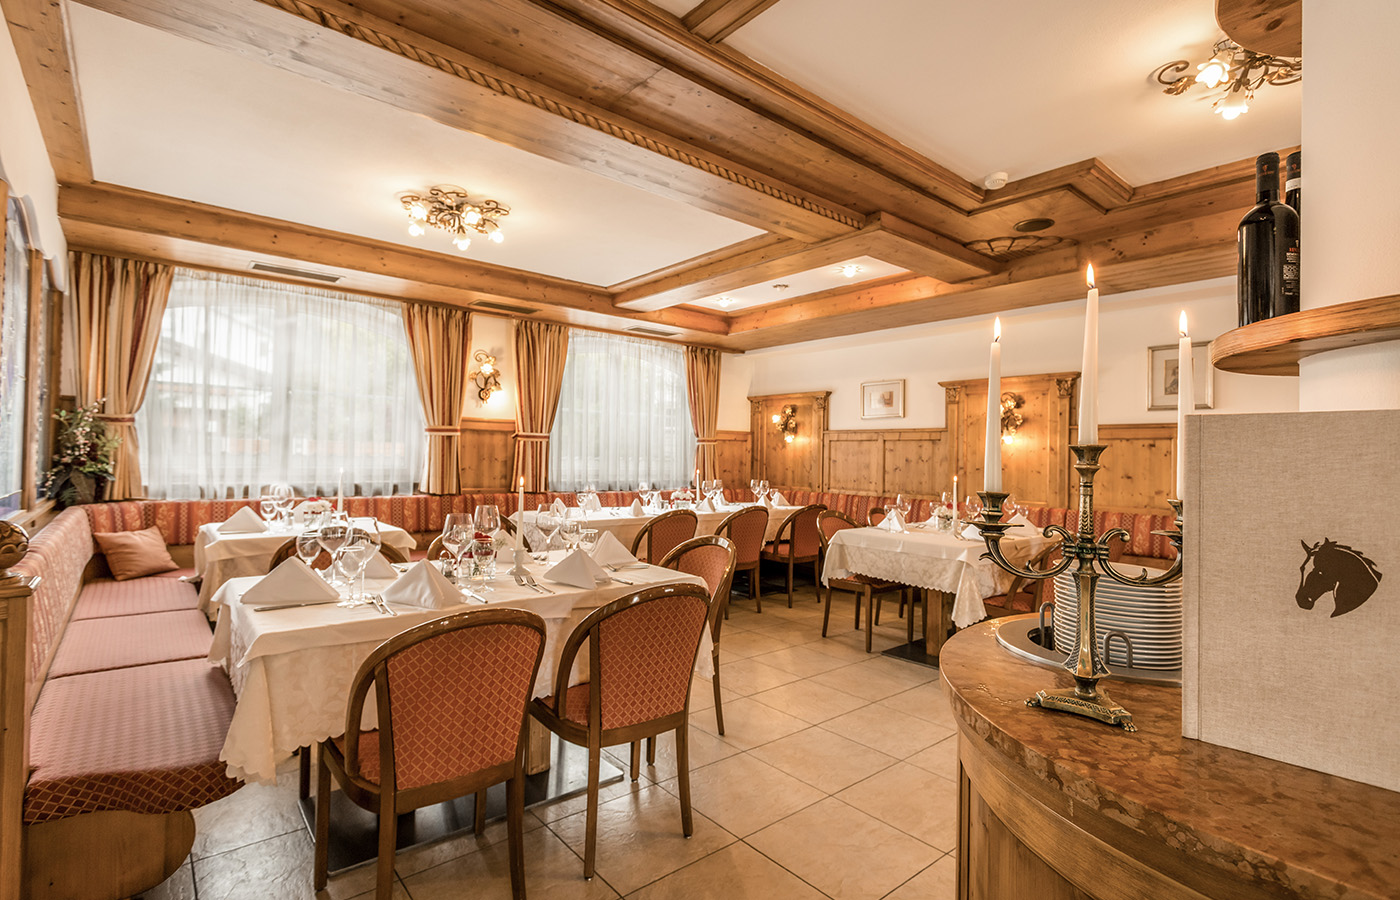 View of wood-panelled restaurant in Vipiteno with lampshades on the wall